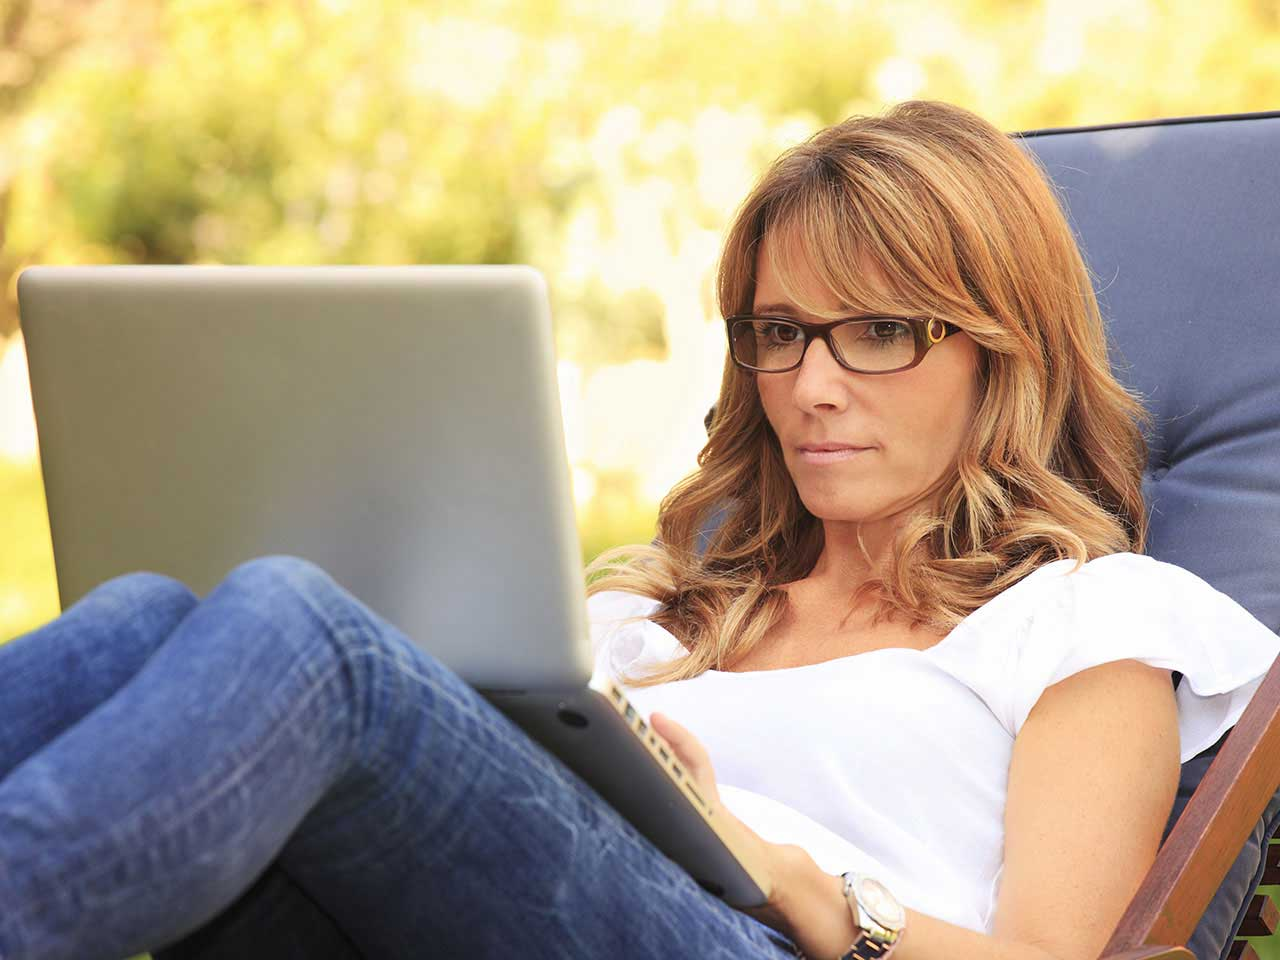 Mature lady researching on laptop in garden